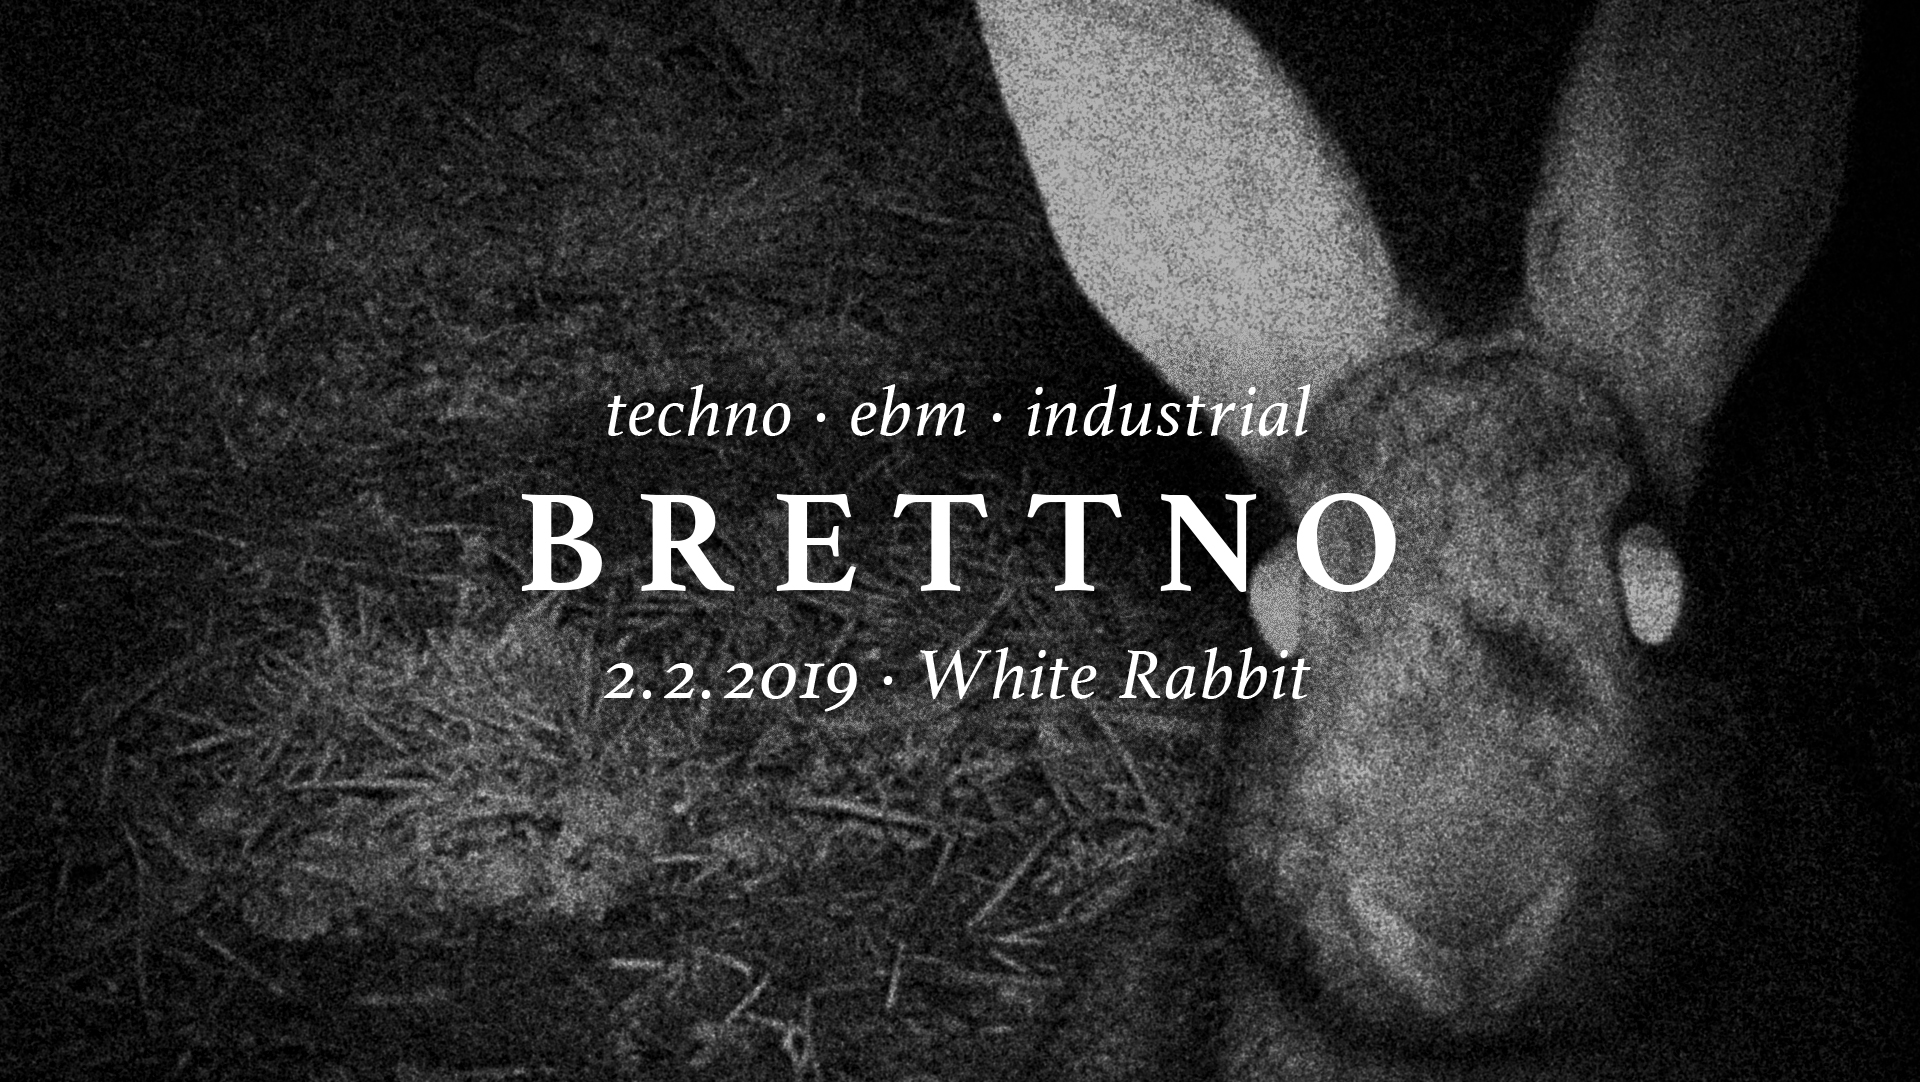 Brettno techno ebm industrial party freiburg white rabbit bretterbude noracism nosexism nohomophobia